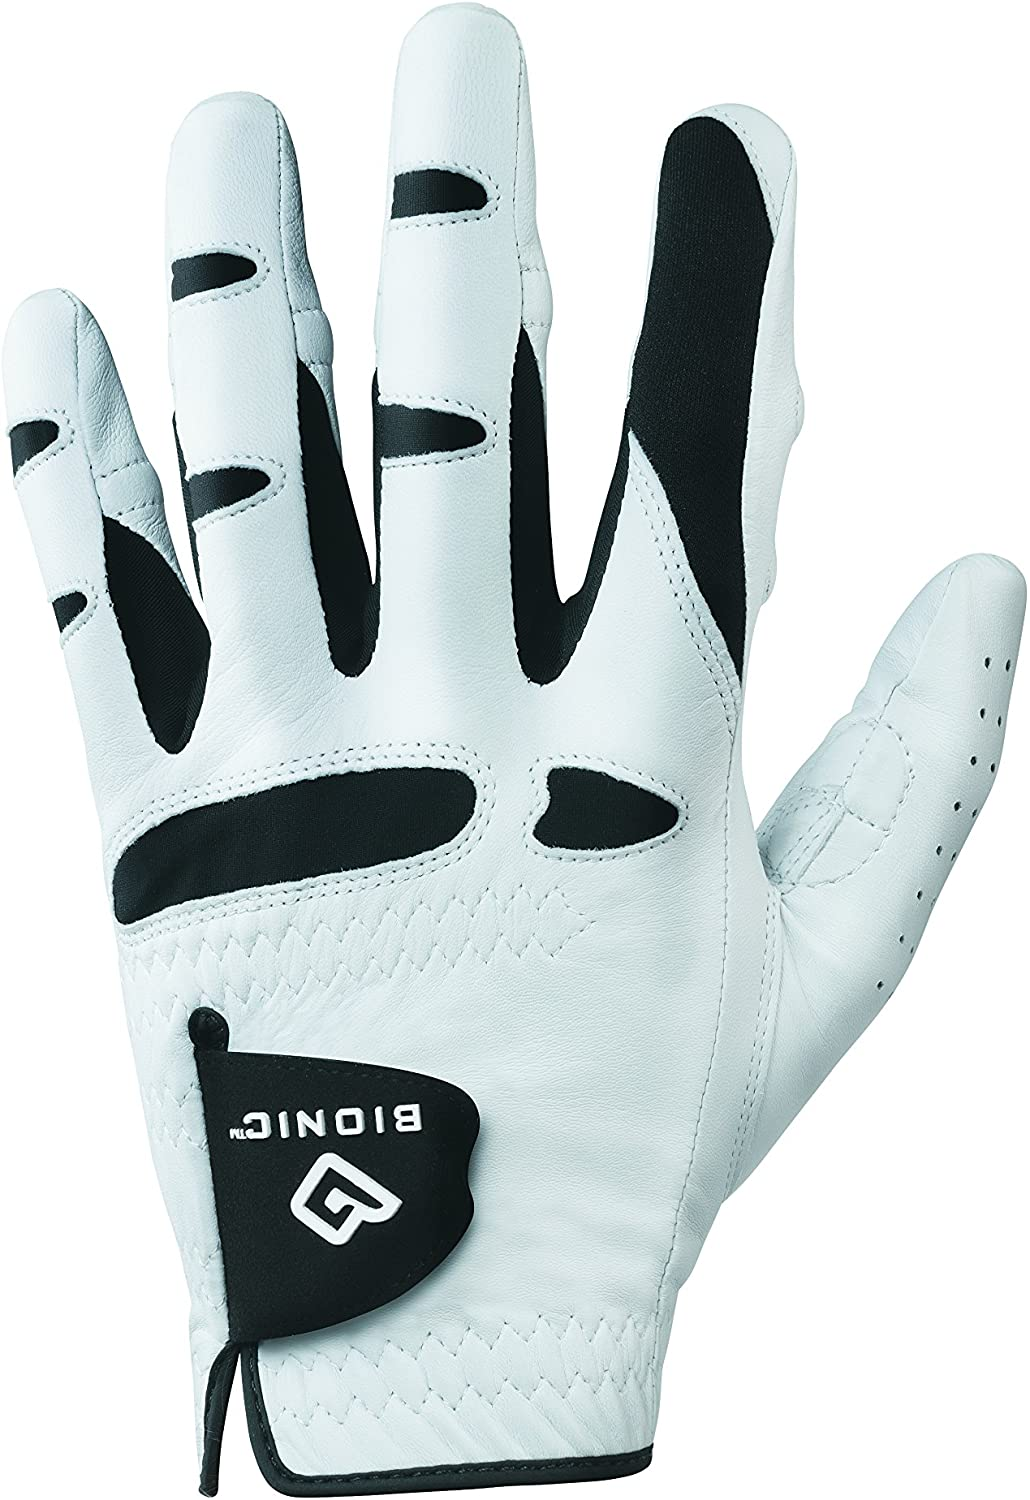 Bionic Gloves Men s StableGrip Golf Glove W Patented Natural Fit Technology Made from Long Lasting, Durable Genuine Cabretta Leather.